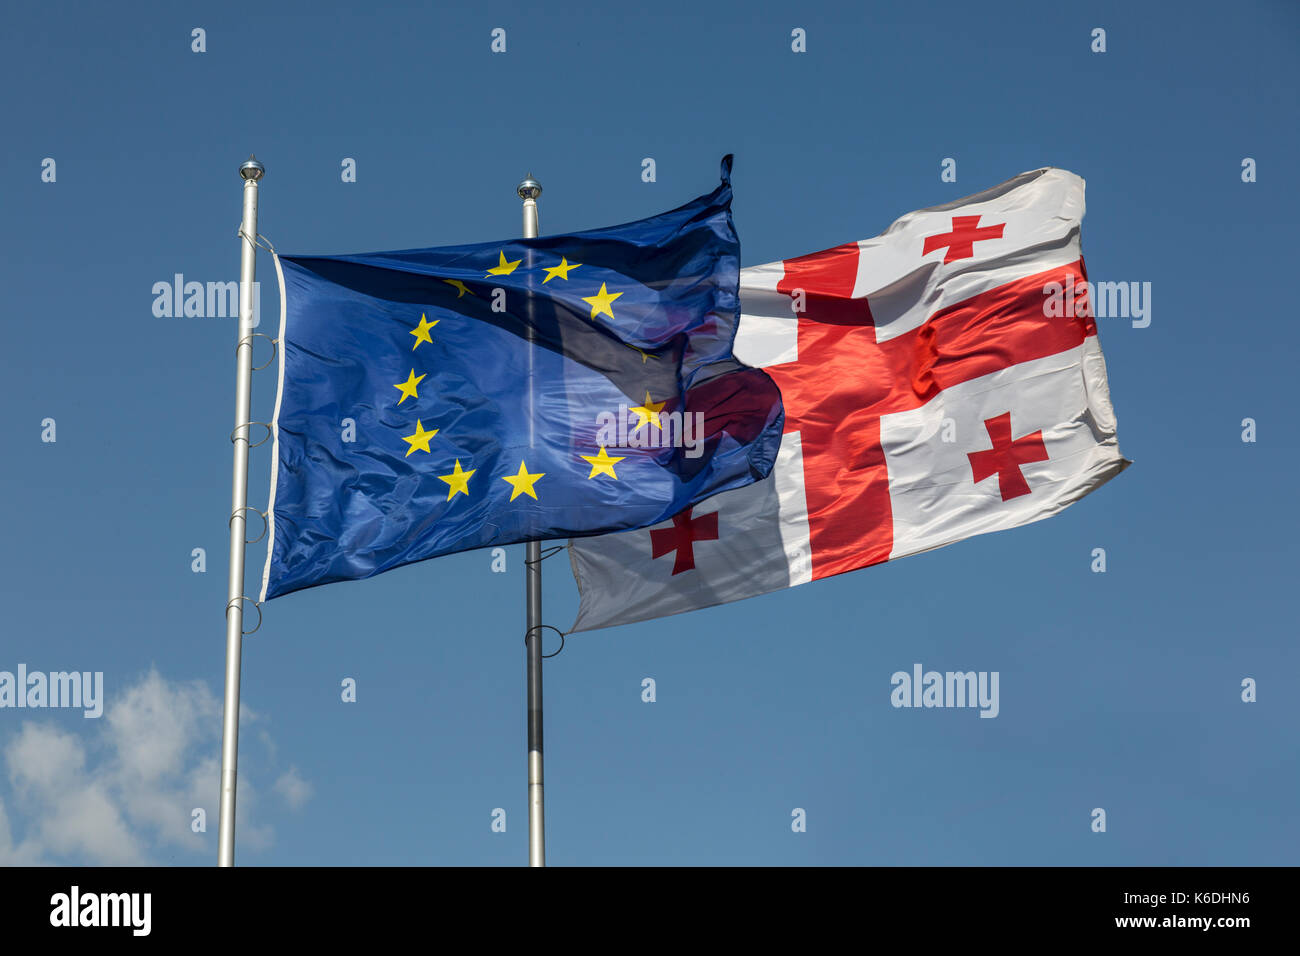 The flags of the European Union and Georgia flying side by side. - Stock Image